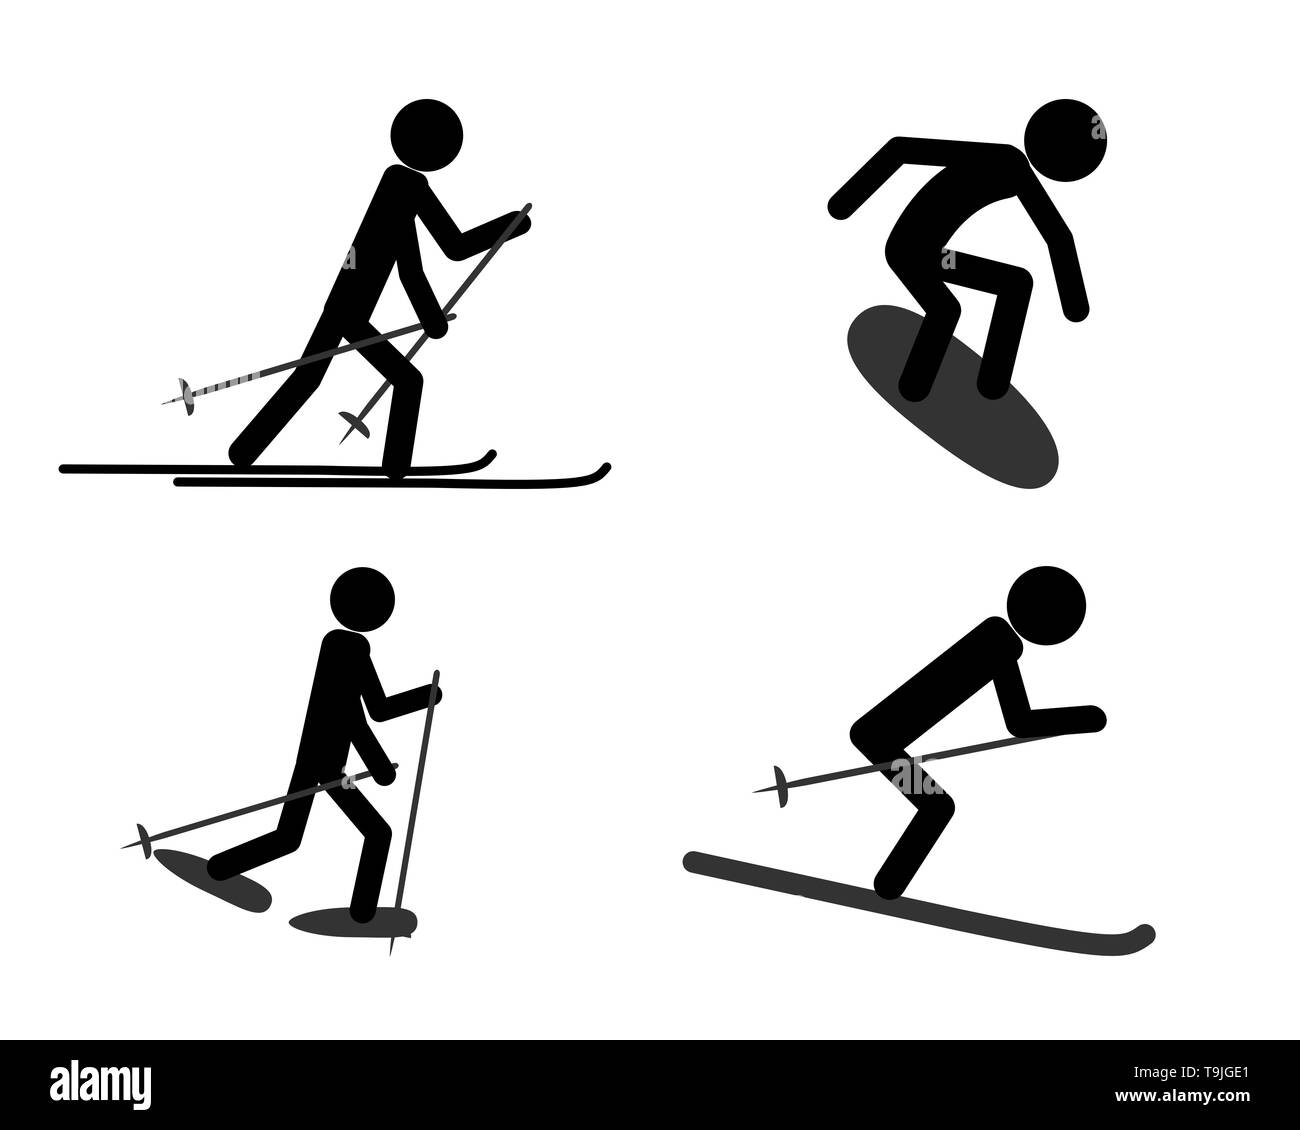 Pictogram of individual sports activities in winter - Stock Image